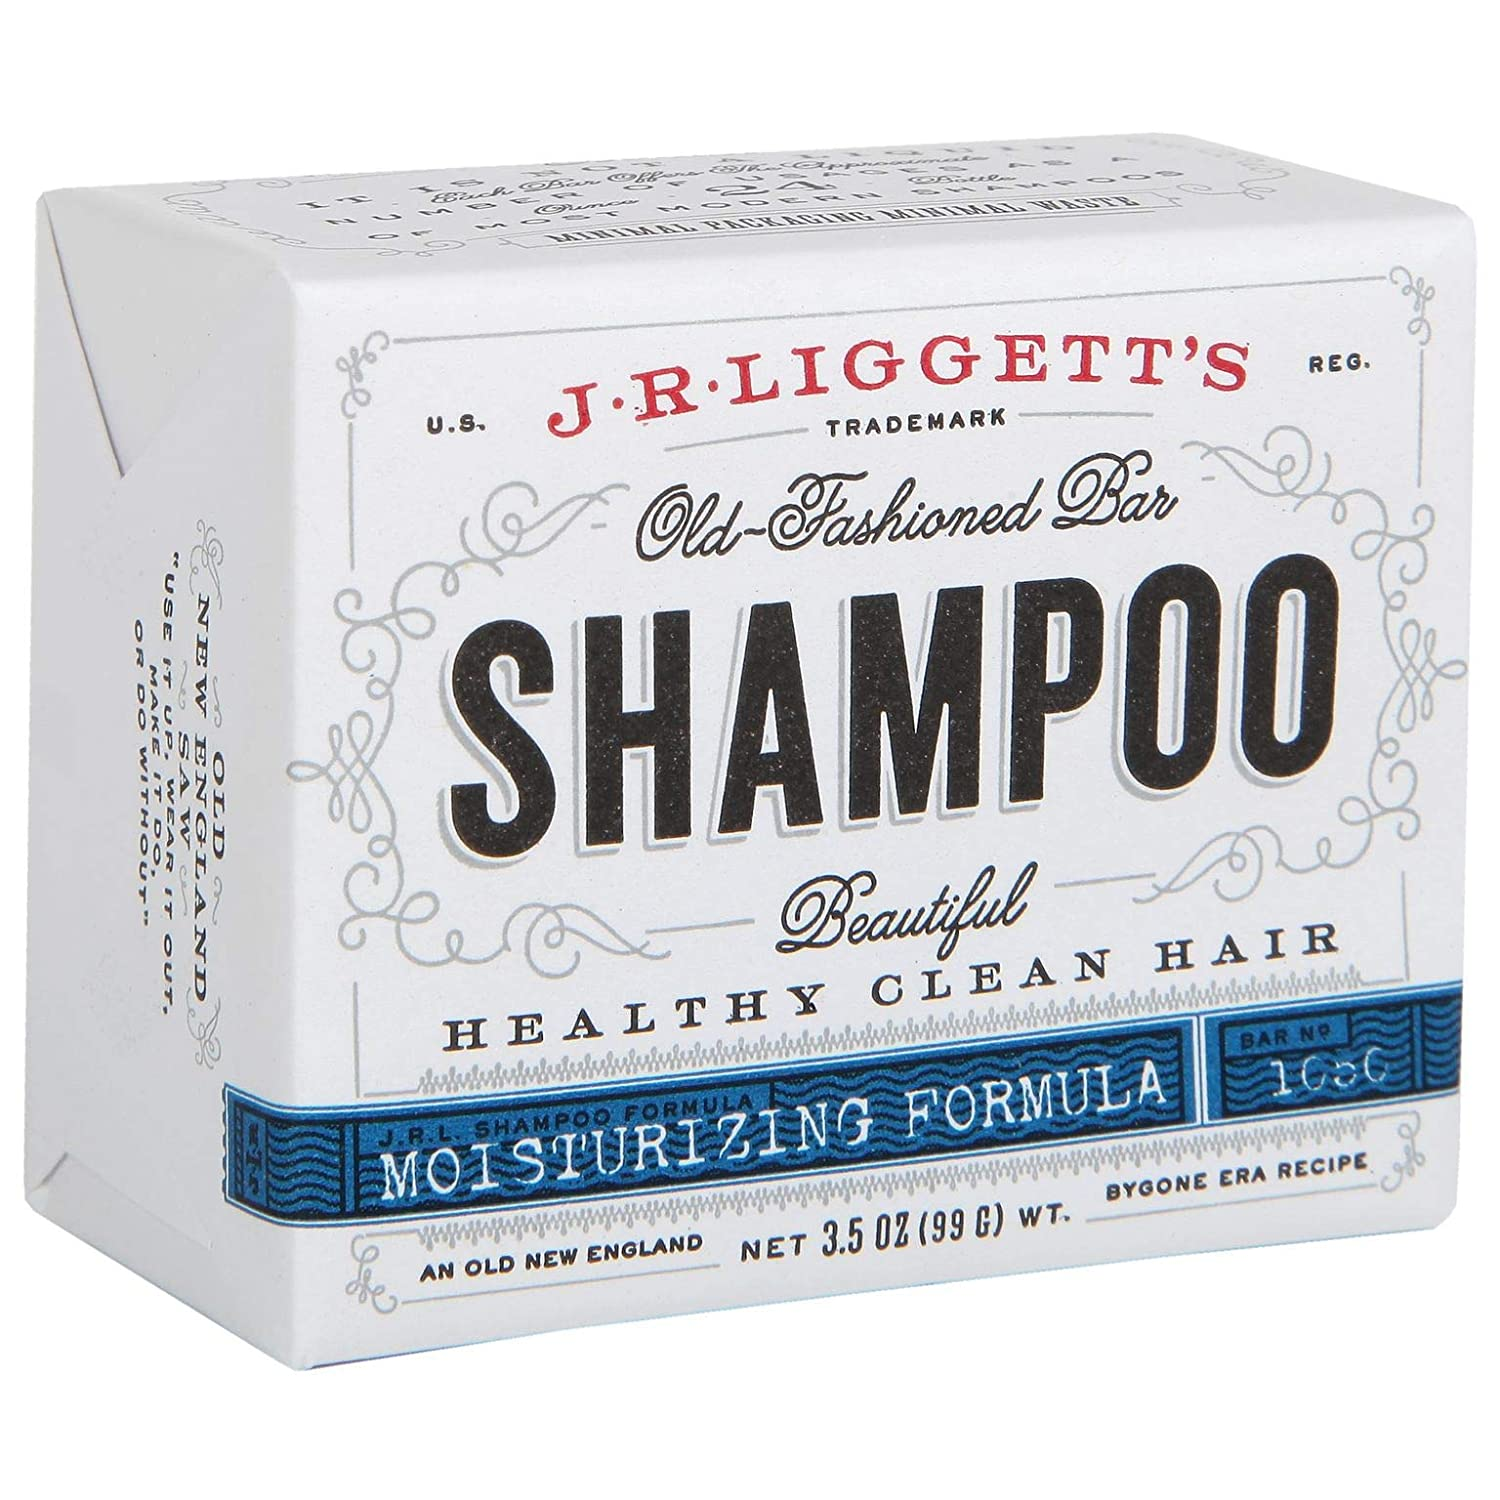 J·R·LIGGETT'S All-Natural Shampoo Bar, Moisturizing Formula - Supports Strong and Healthy Hair - Nourish Follicles with Antioxidants and Vitamins - Detergent and Sulfate-Free, One 3.5 Ounce Bar : Beauty Products : Beauty